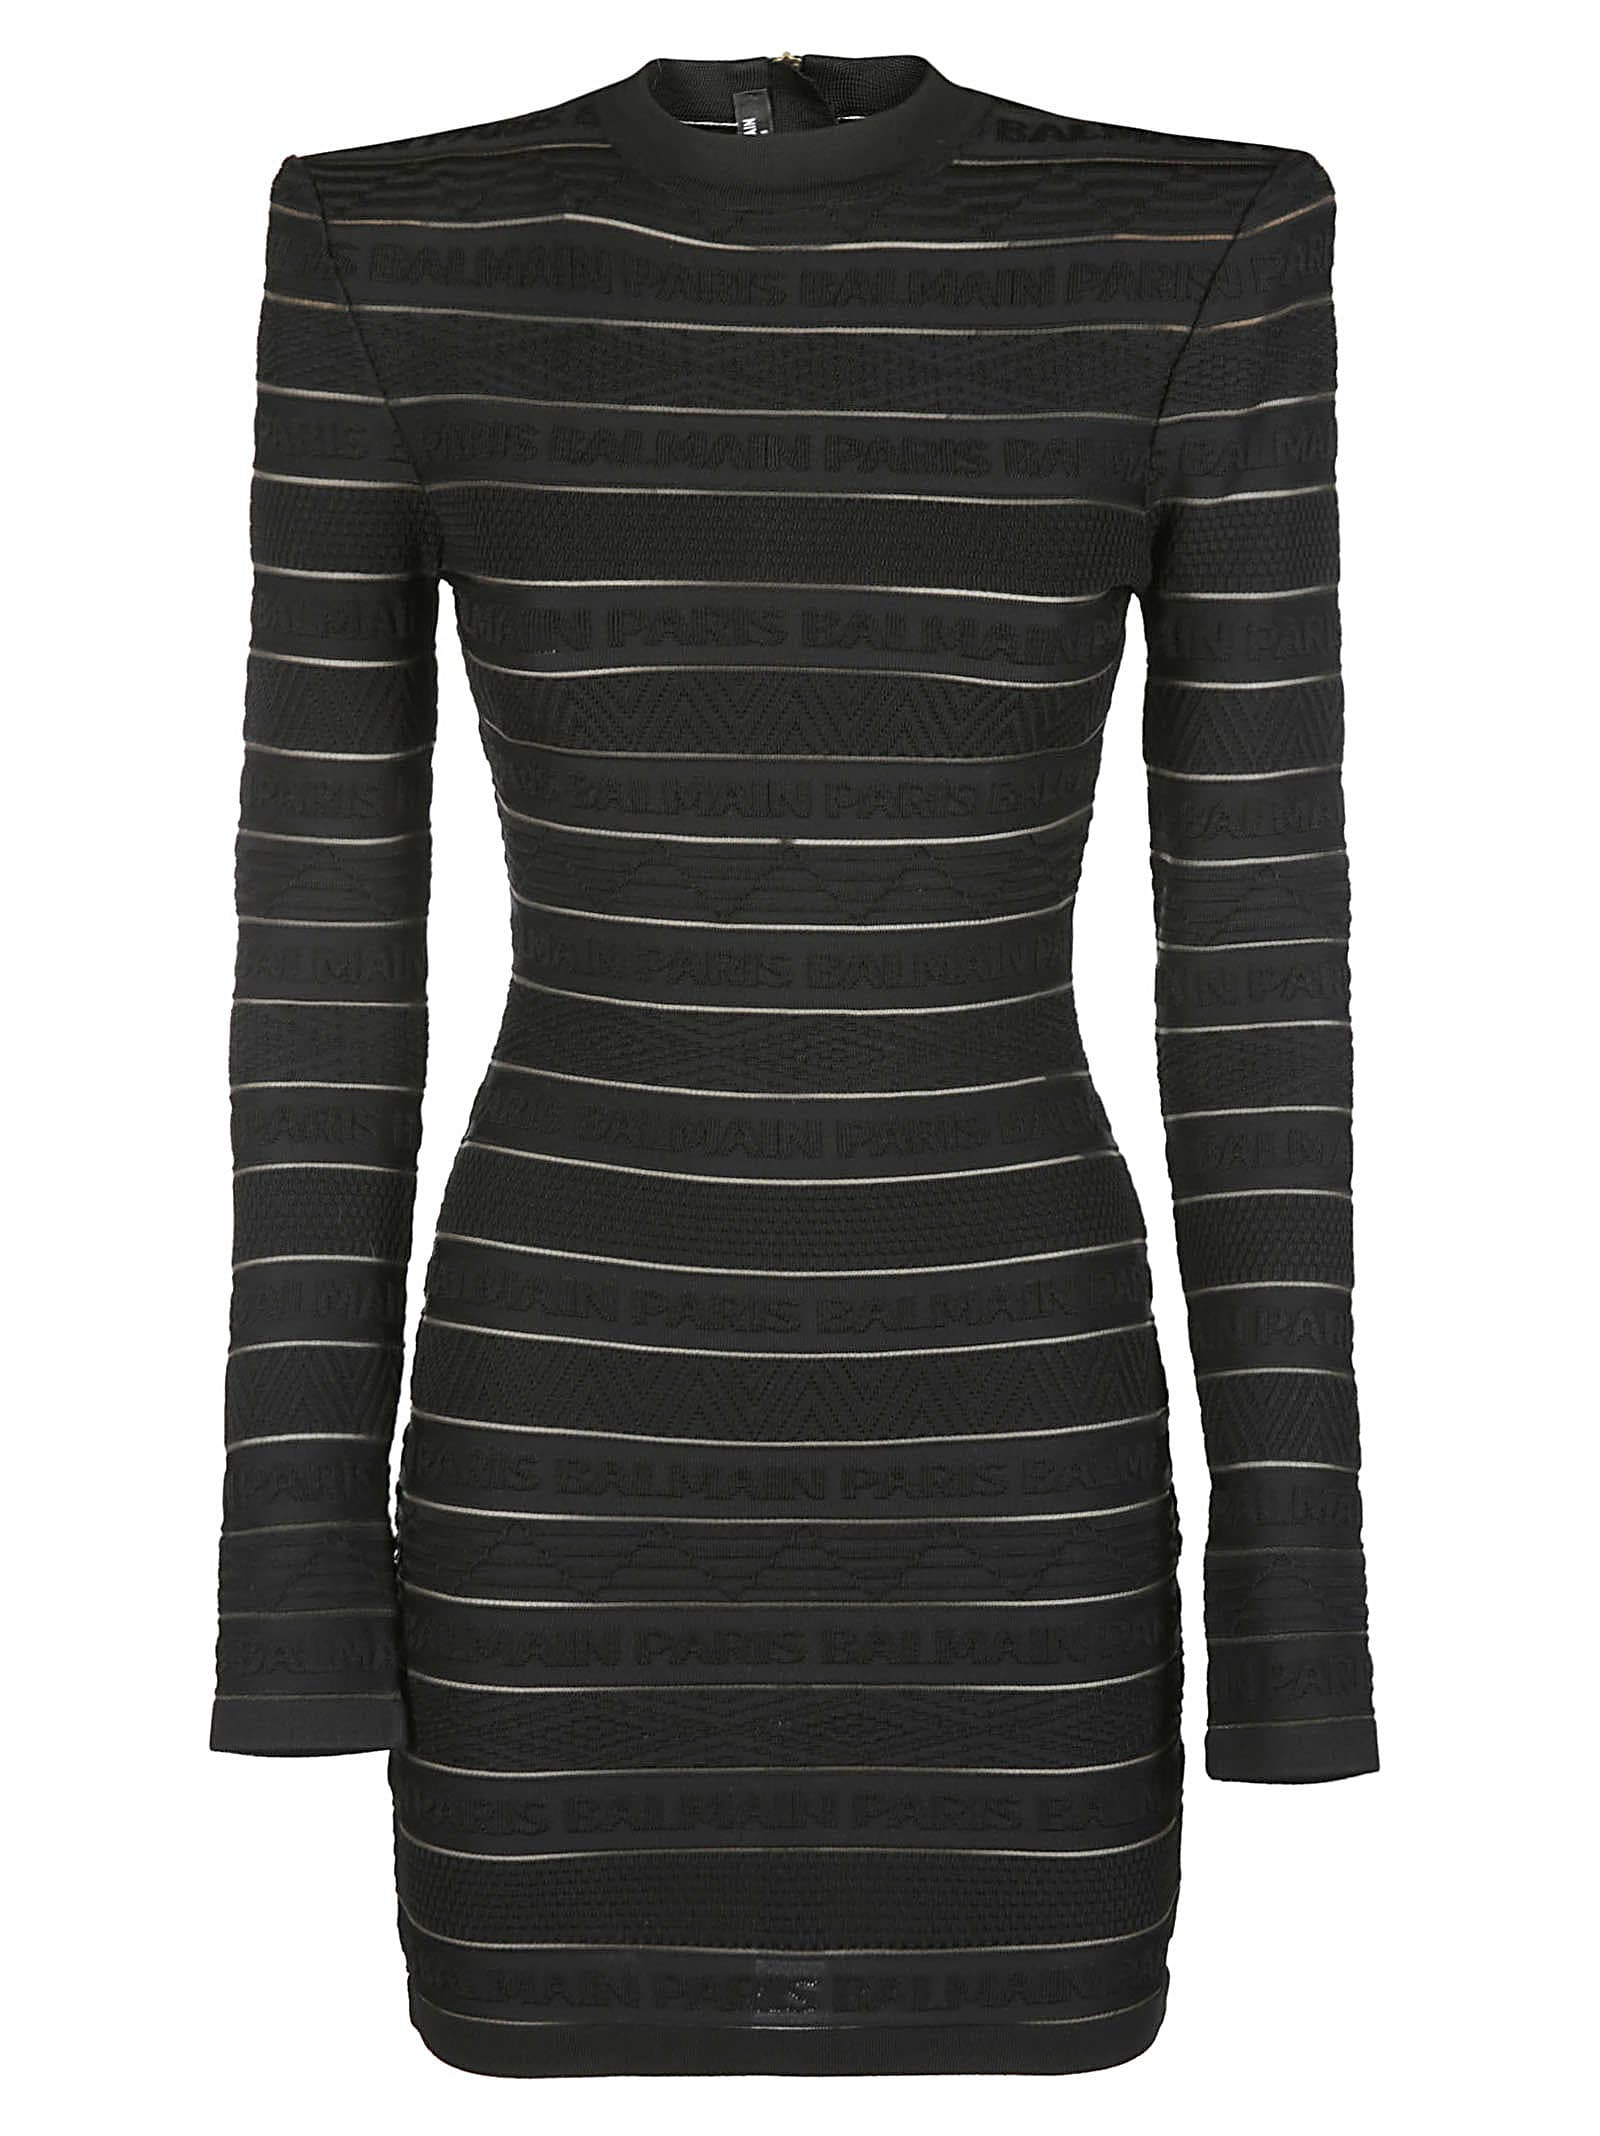 Buy Balmain Black Viscose Blend Mini Dress online, shop Balmain with free shipping